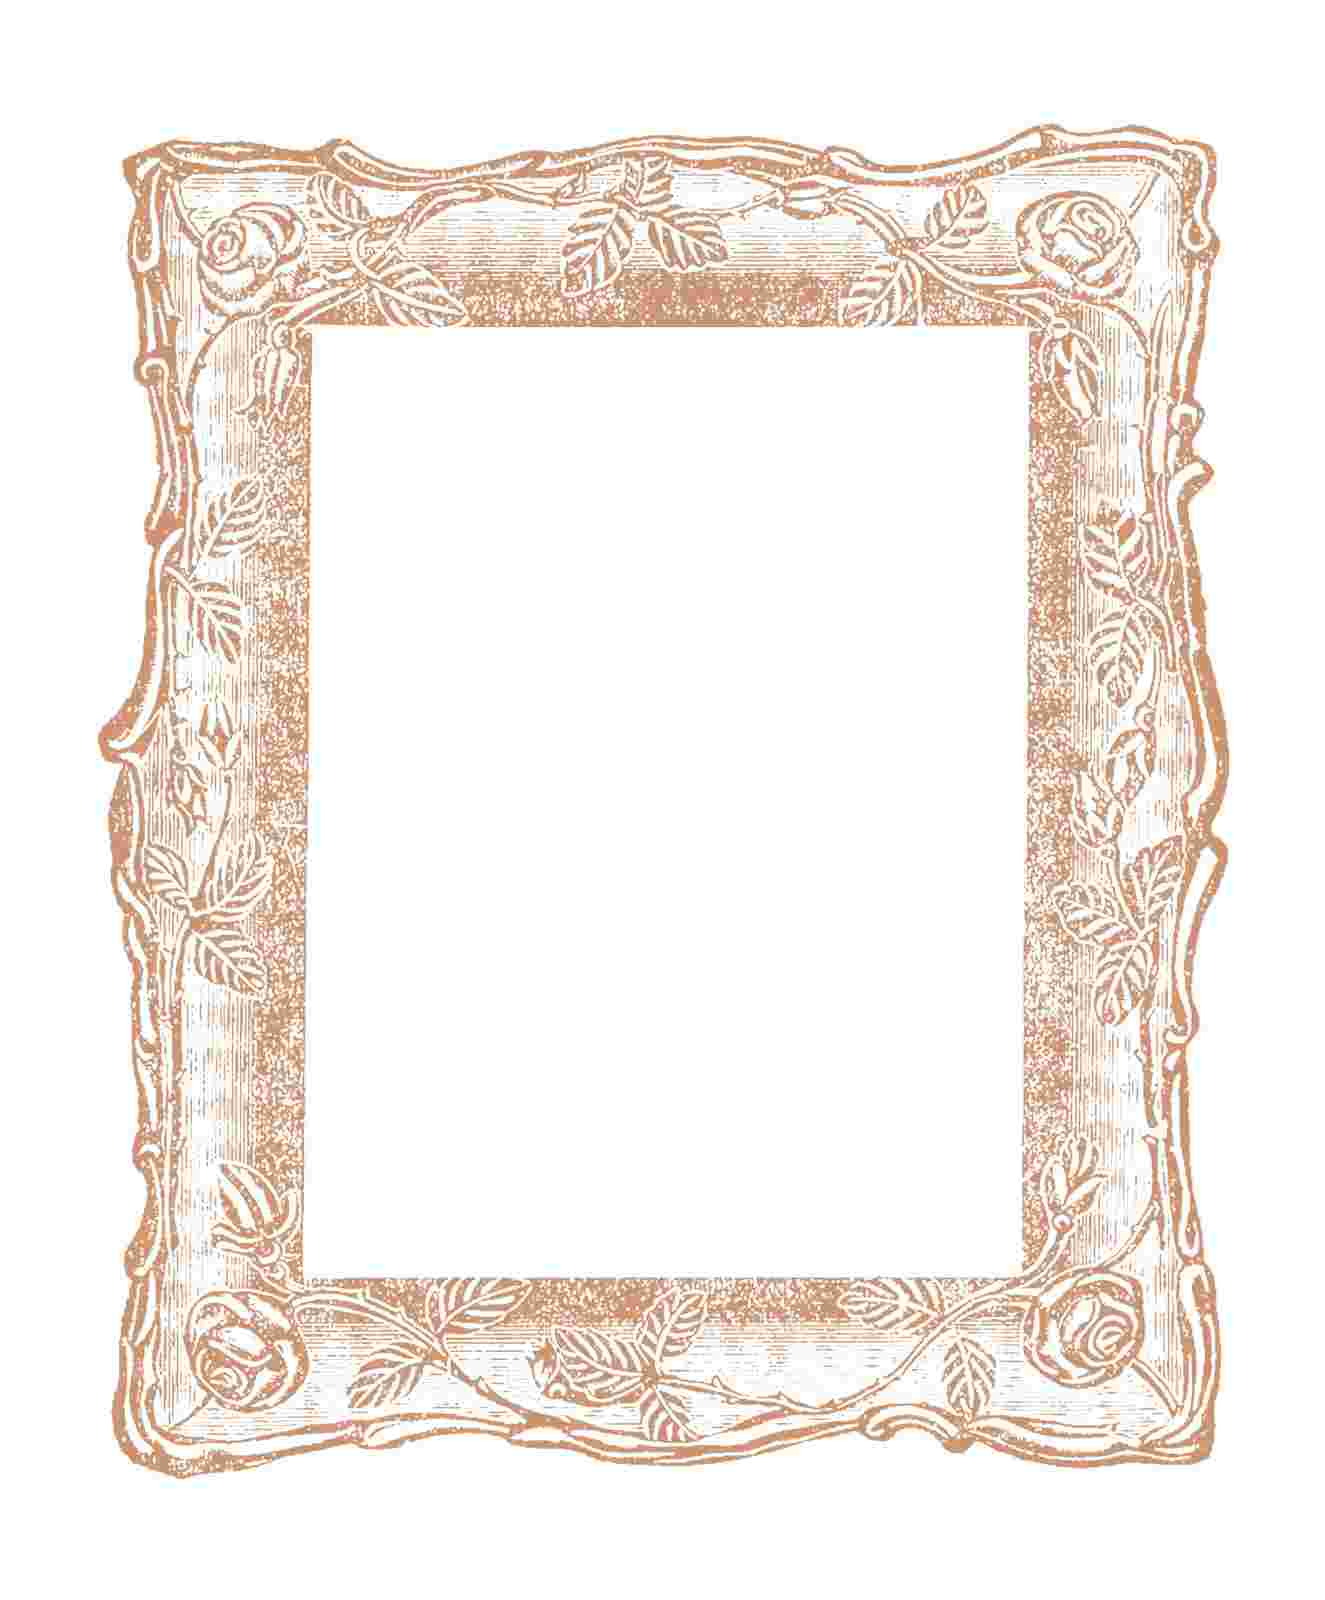 Best Cliparts: Vintage Frames Clipart Antique Images Vintage.